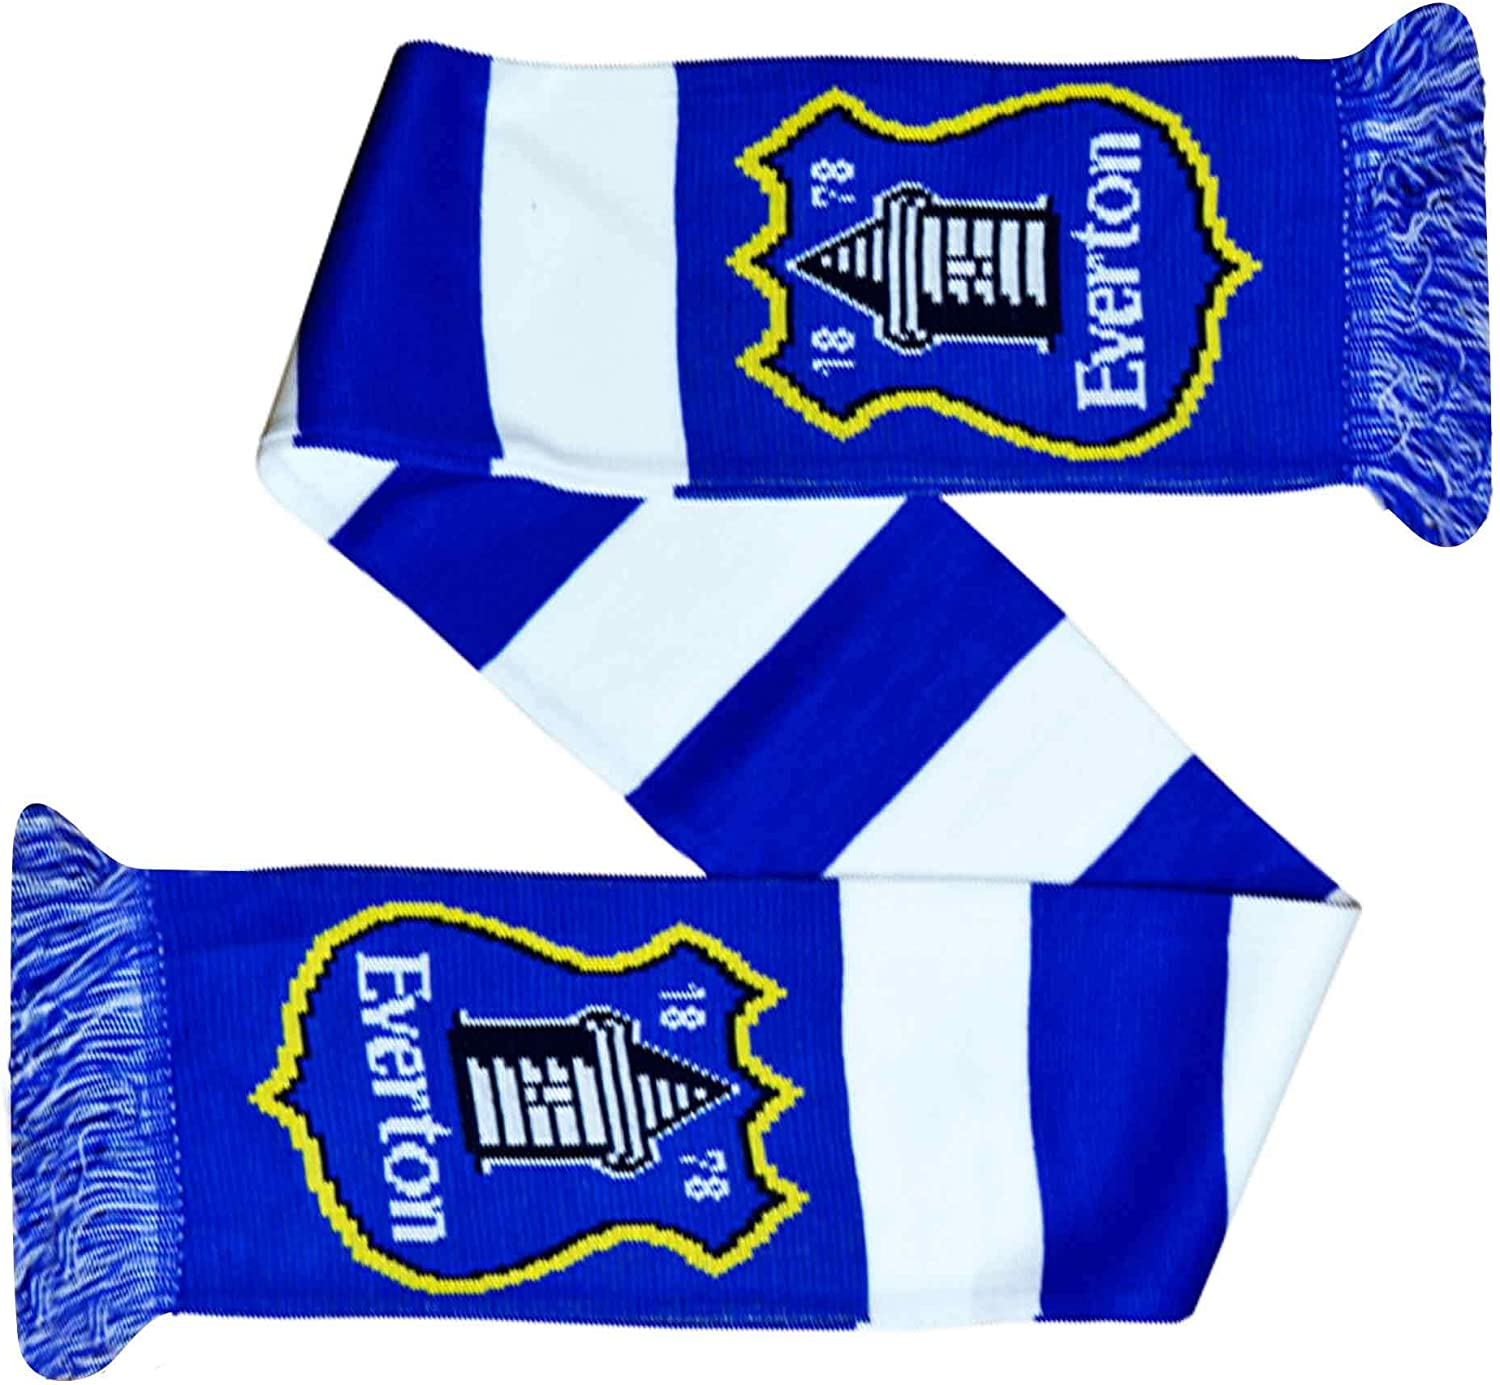 Everton Official FC Football Crest Indefinitely 5 ☆ very popular Acrylic Bar Scarf 100% Fans